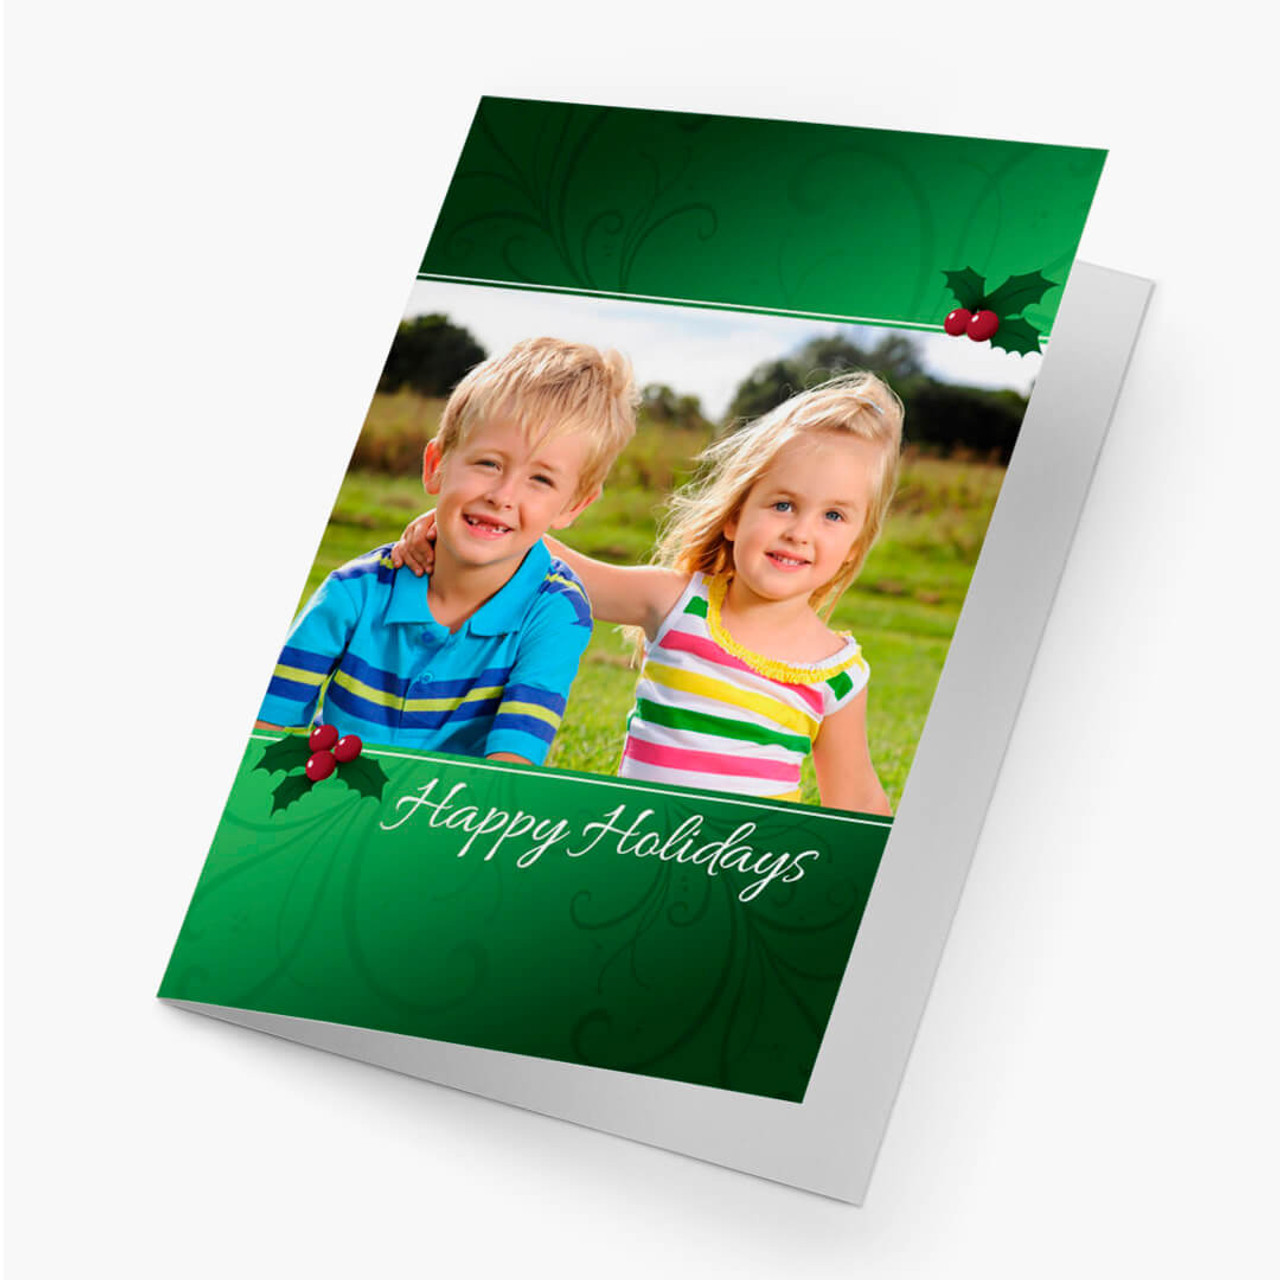 Holly Accent Photo - Matte Finish Christmas Card